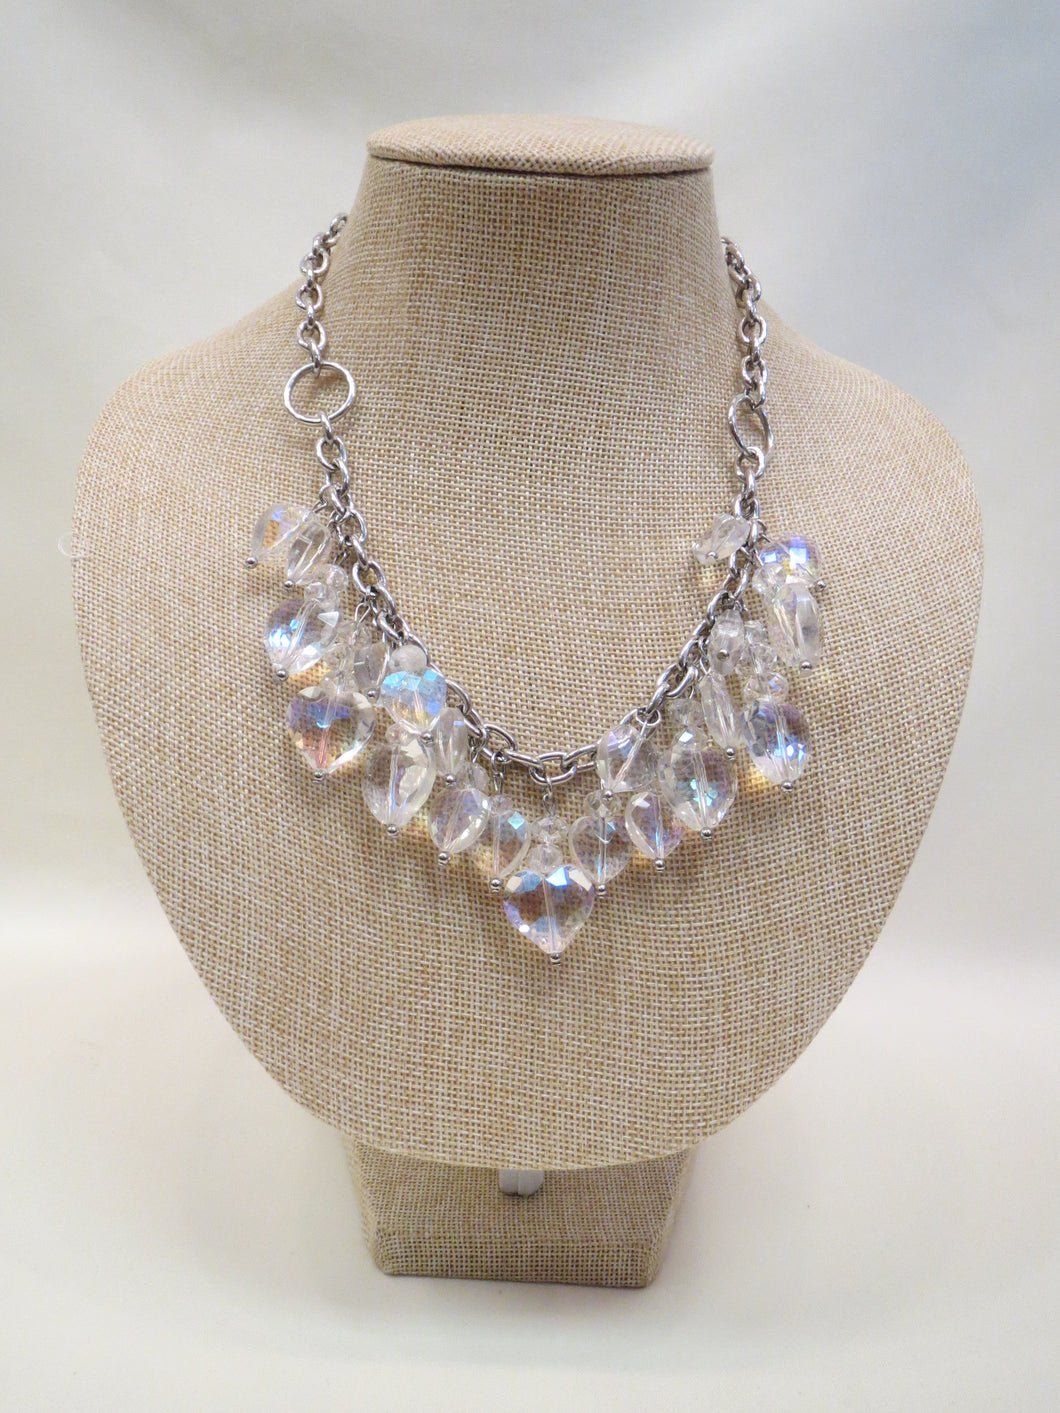 ADO | Heart Crystals Silver Chain Necklace - All Decd Out